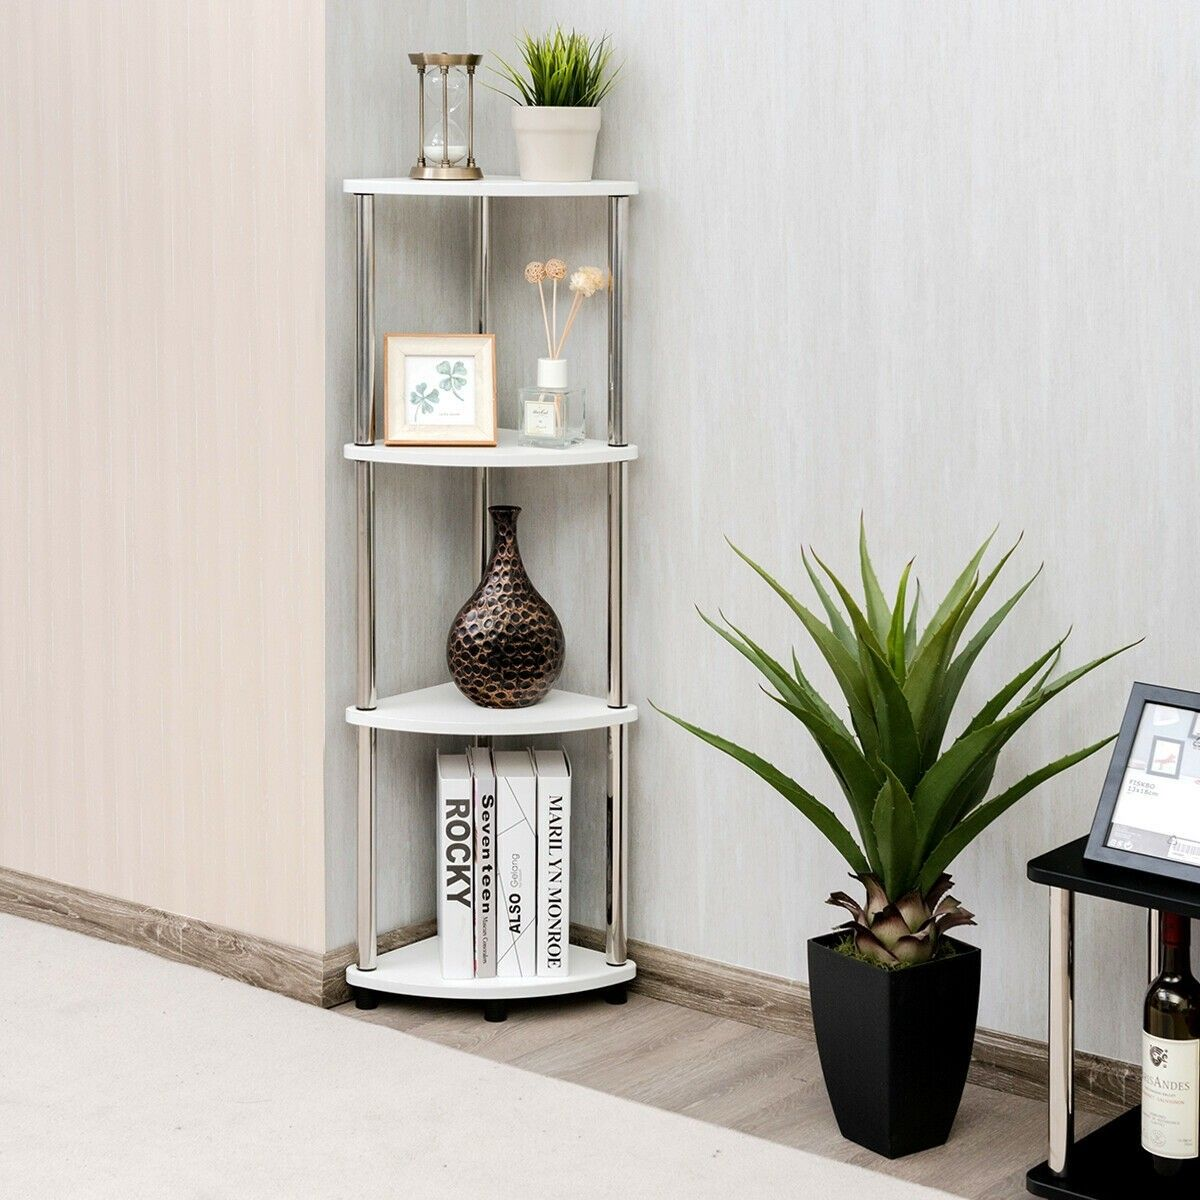 4 Tier Light Duty Living Room Display Stand Corner Shelf Room Display Corner Shelves Wall Mounted Corner Shelves